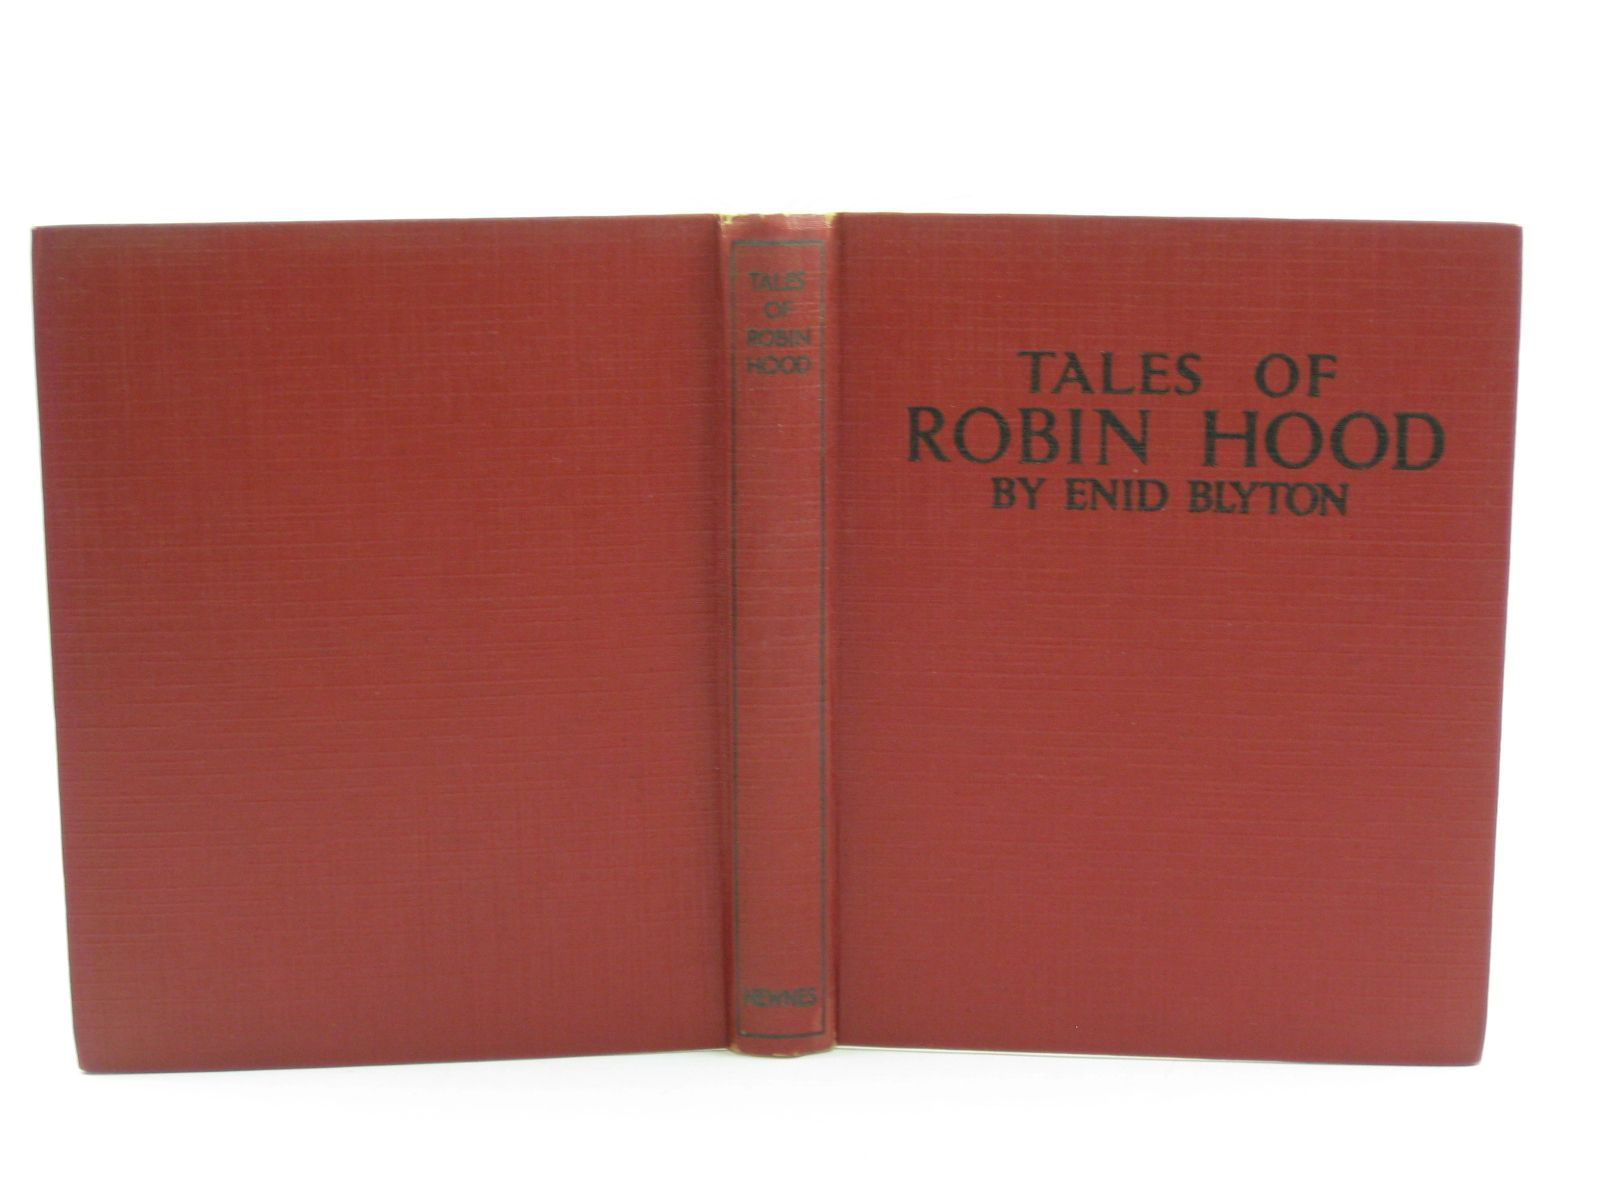 Photo of TALES OF ROBIN HOOD written by Blyton, Enid published by George Newnes (STOCK CODE: 1406937)  for sale by Stella & Rose's Books